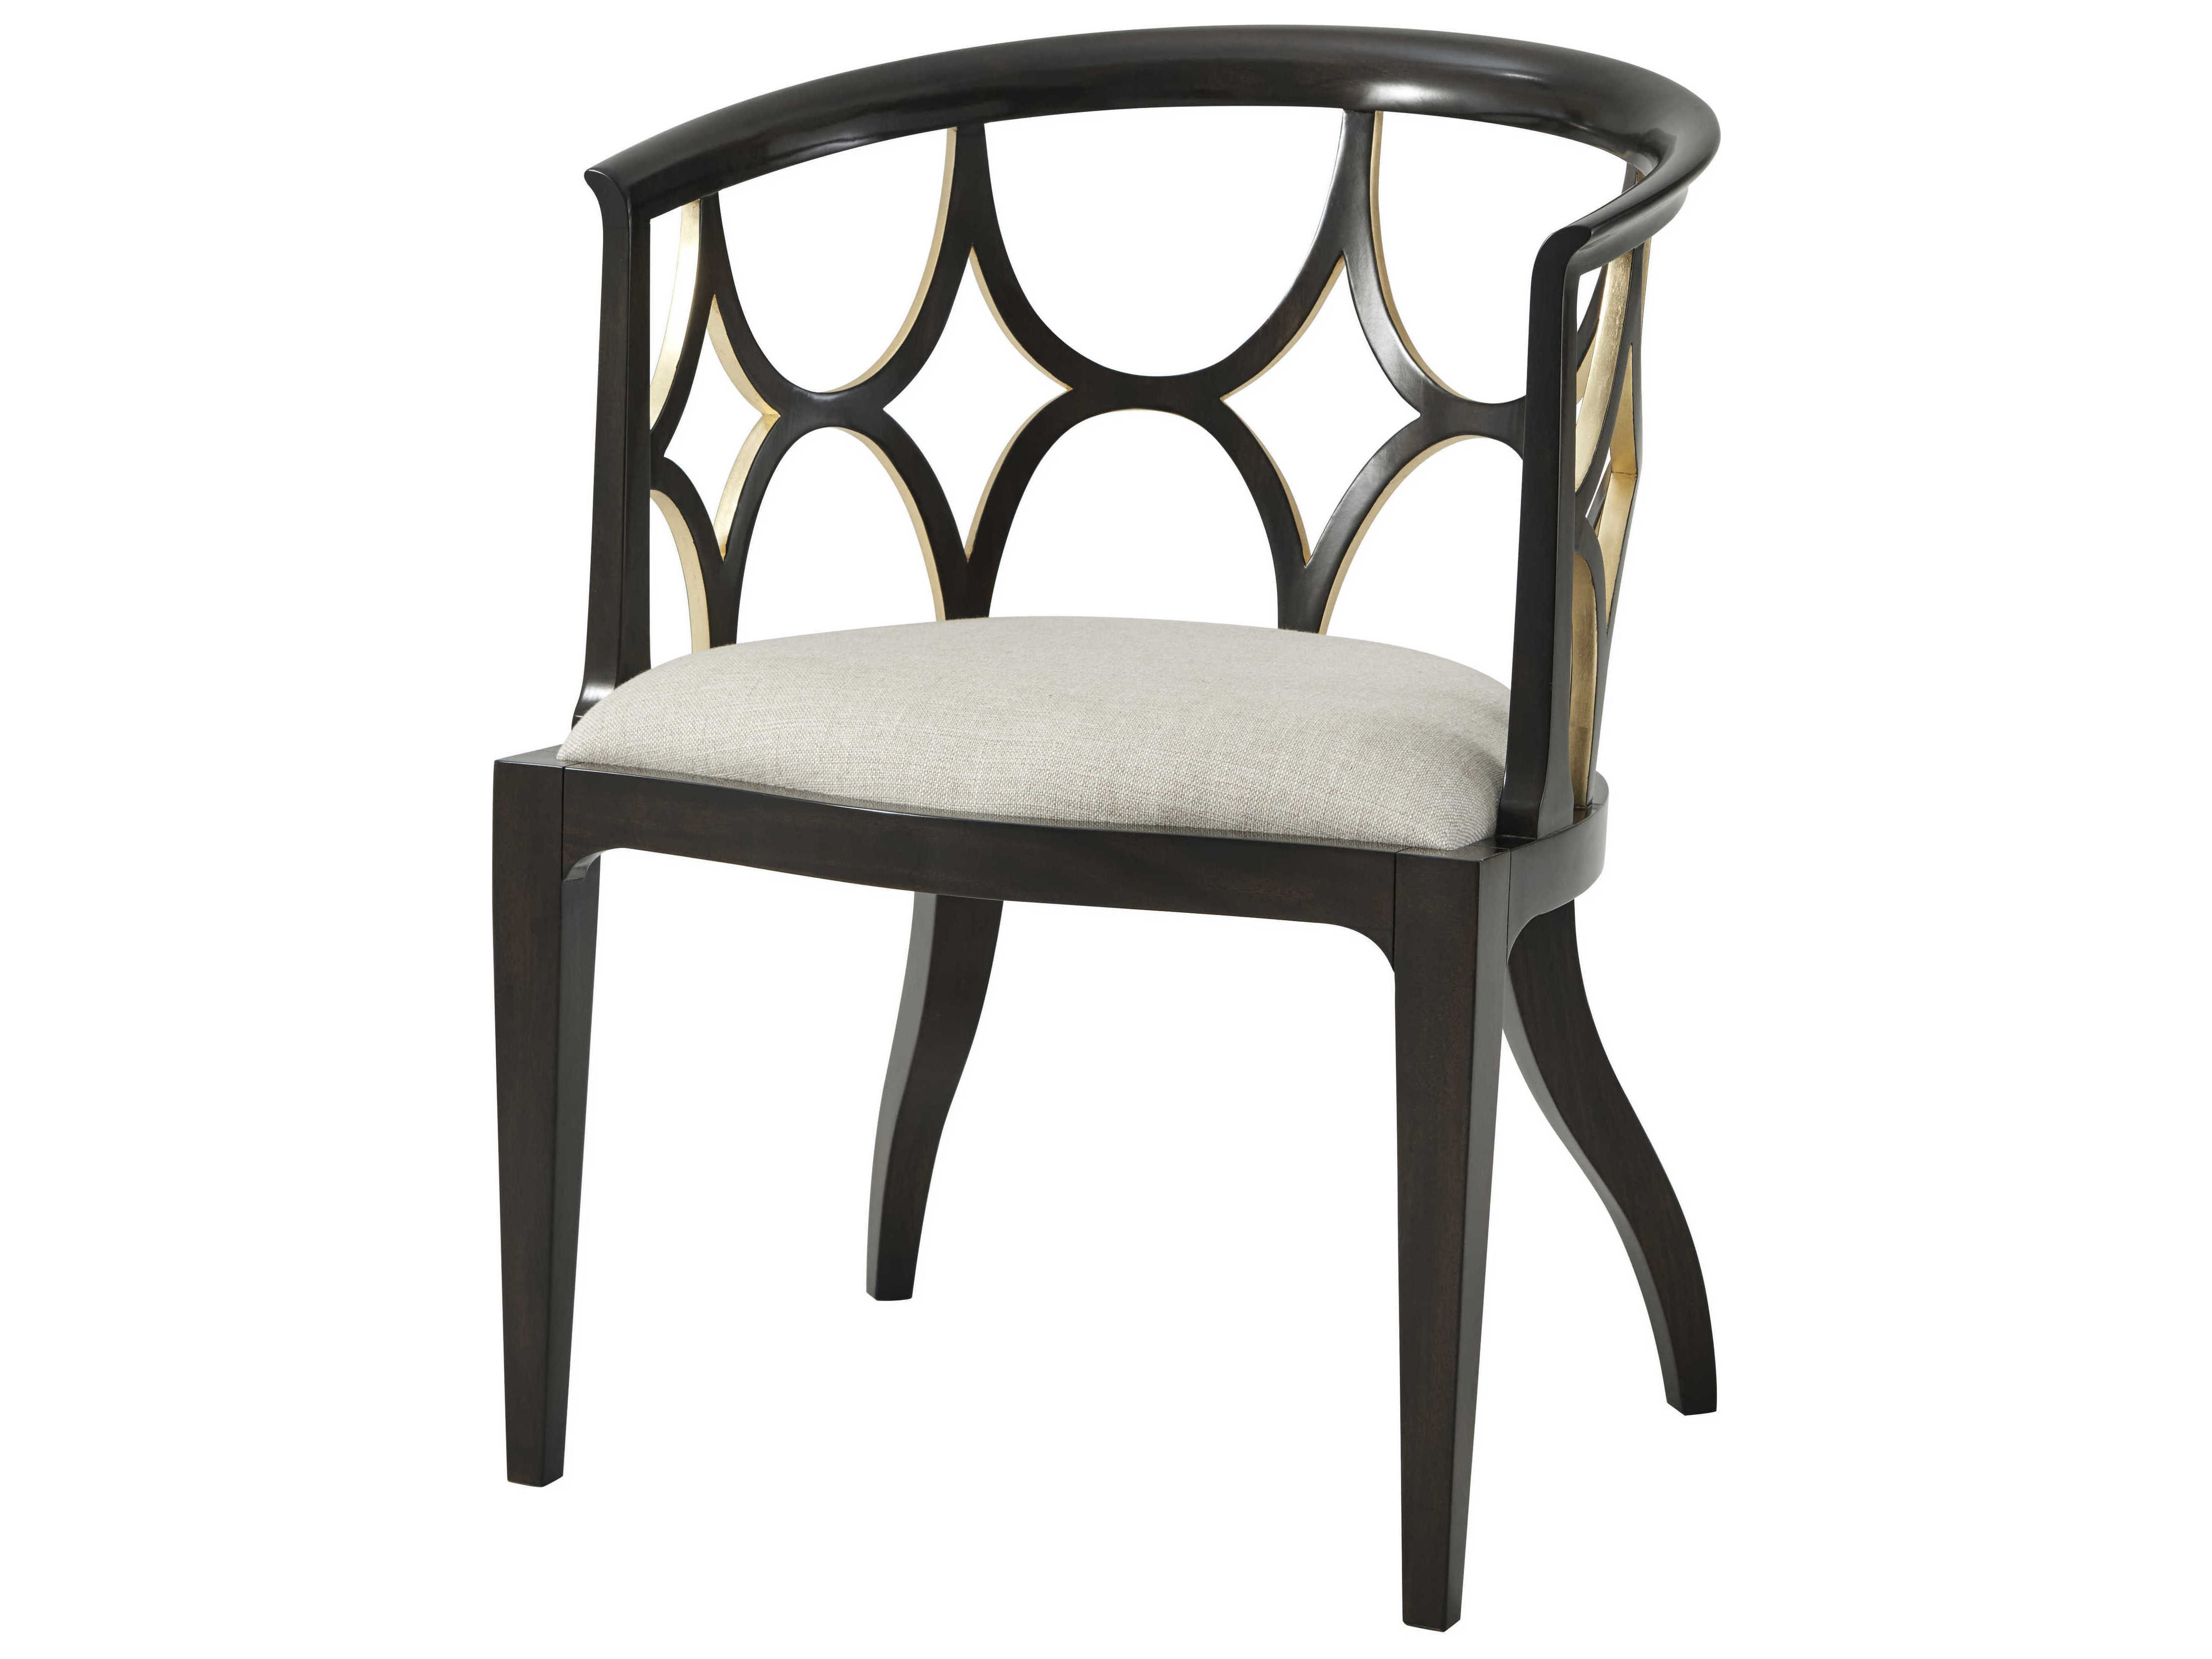 Astounding Theodore Alexander Ebonised Gilt Accent Chair Short Links Chair Design For Home Short Linksinfo